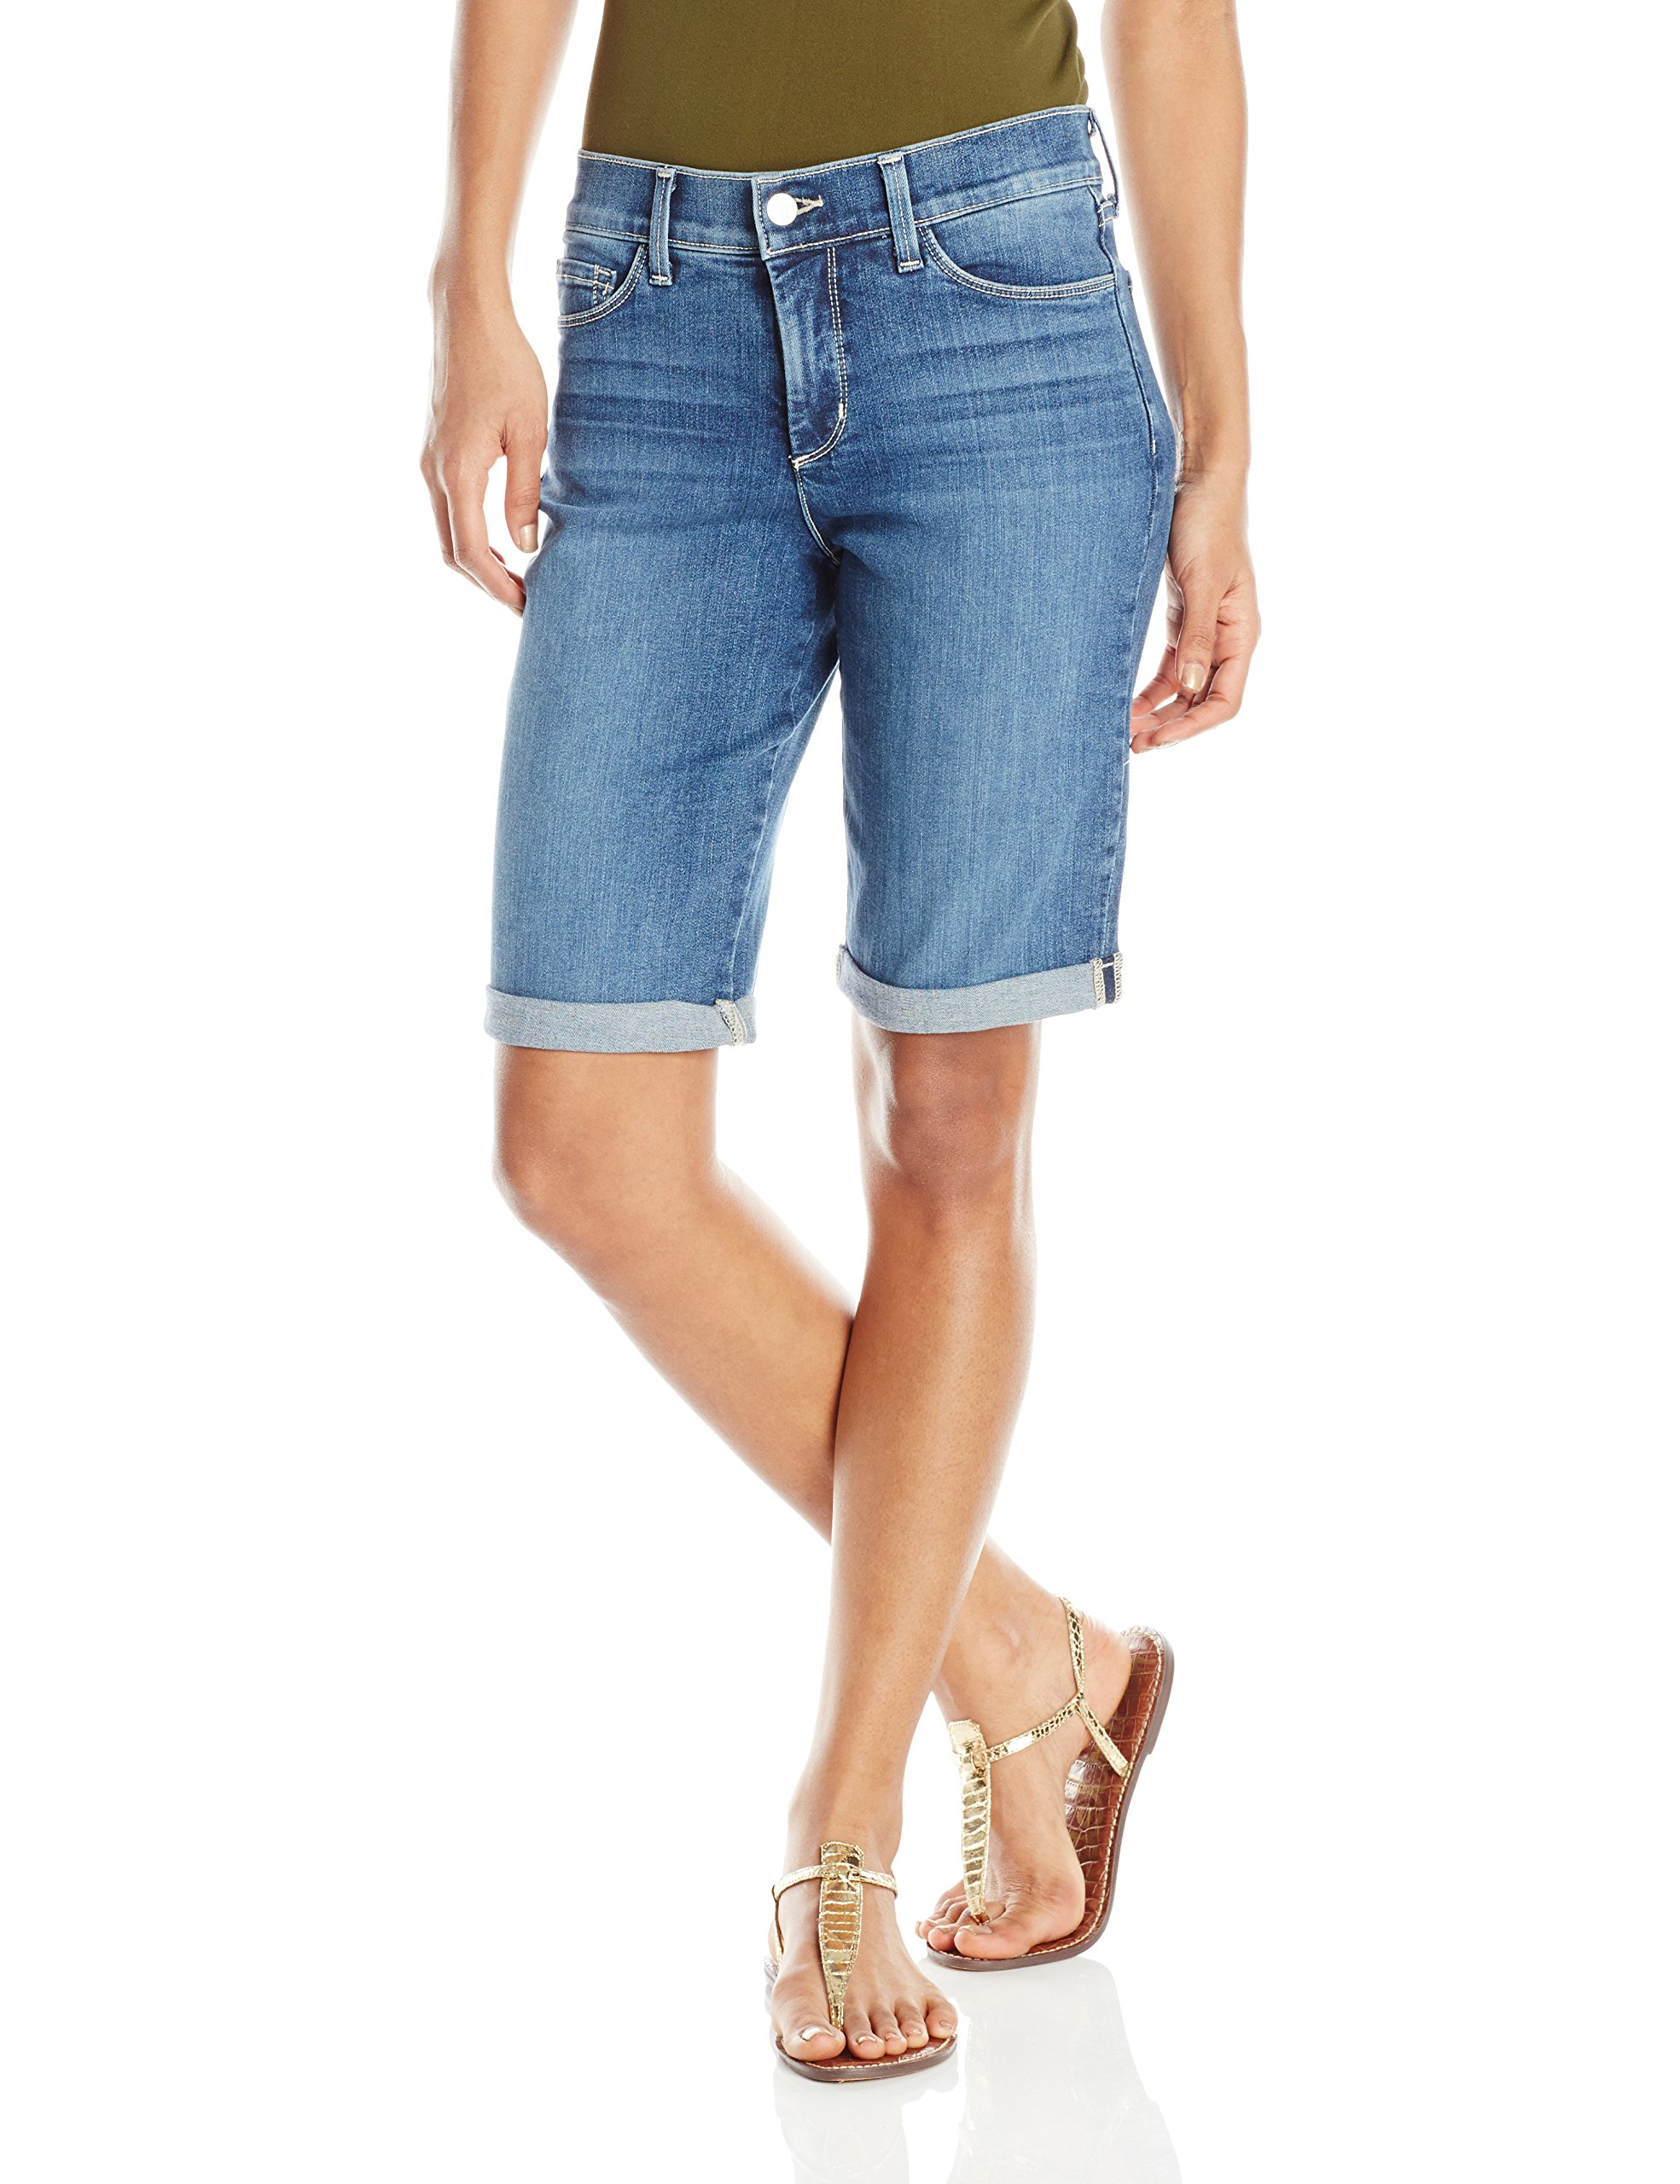 NYDJ Women's Briella Shorts in Stretch Indigo Denim, Heyburn, 14